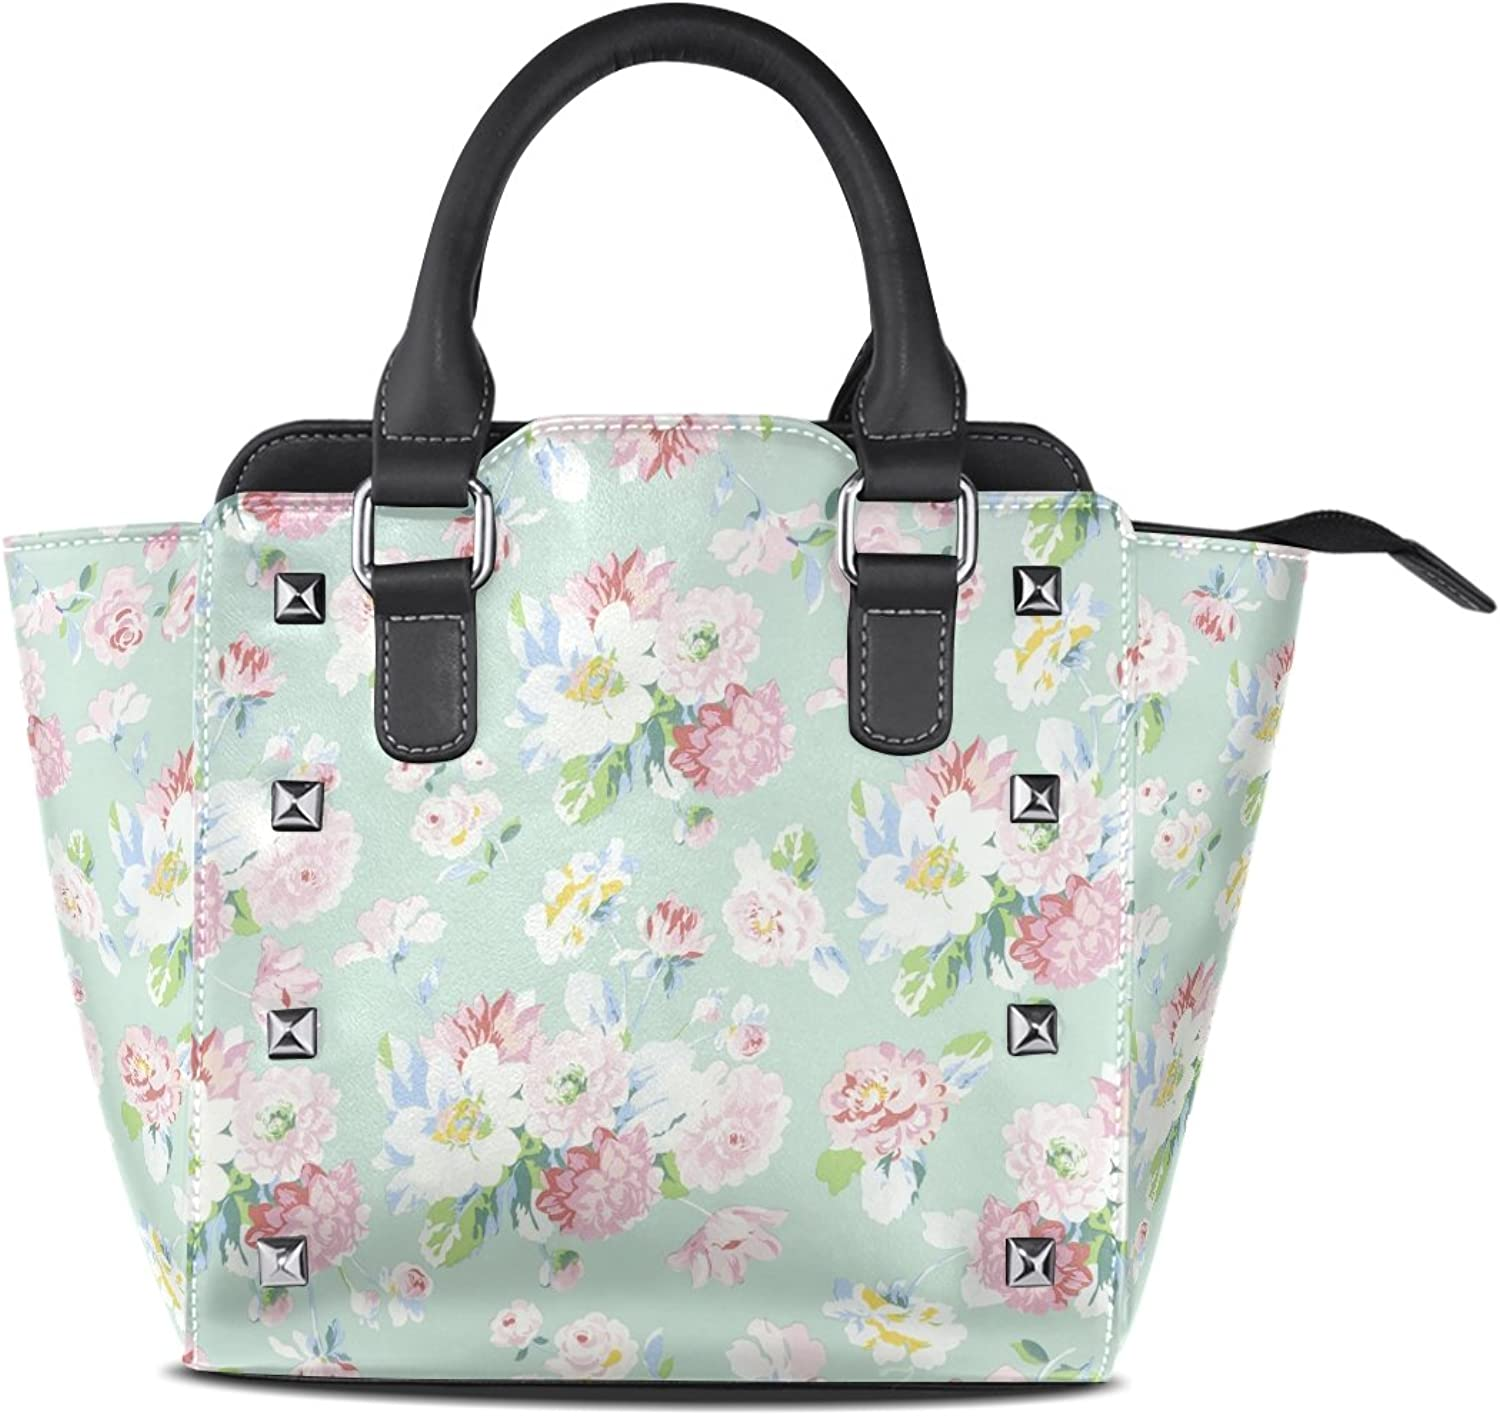 Sunlome Field of Flowers Print Women's Leather Tote Shoulder Bags Handbags